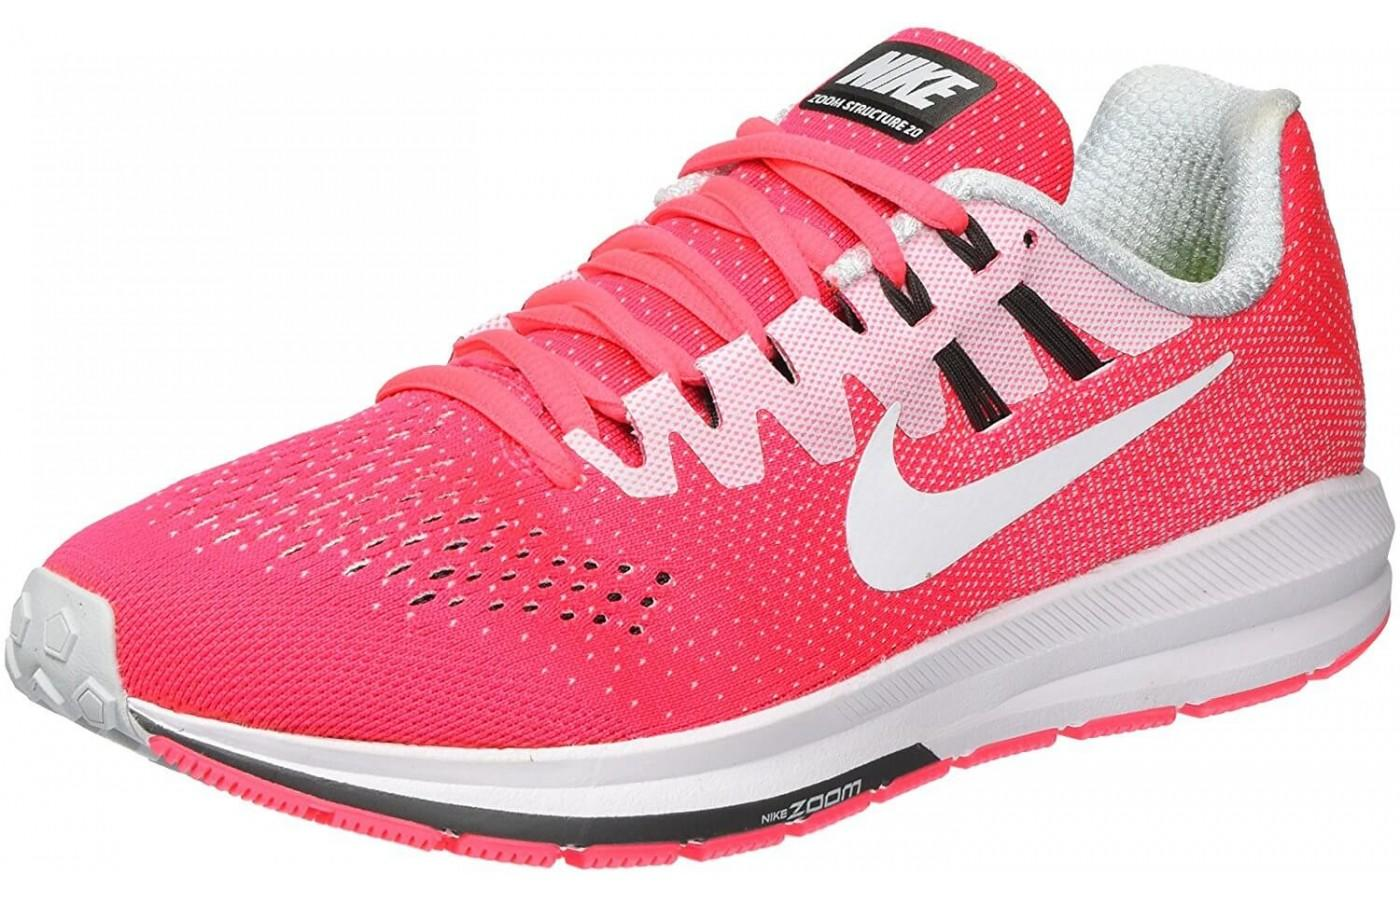 A red variation of Nike air zoom structure 20